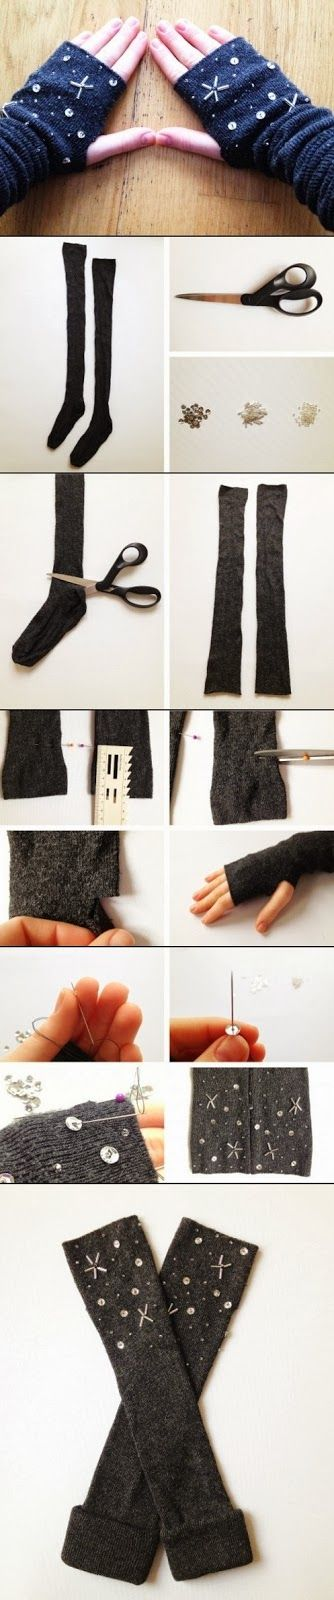 DIY mittens for winter season.For these mittens you'll need socks of your choice, scissors, needle and thread, beads and sequins of your t...